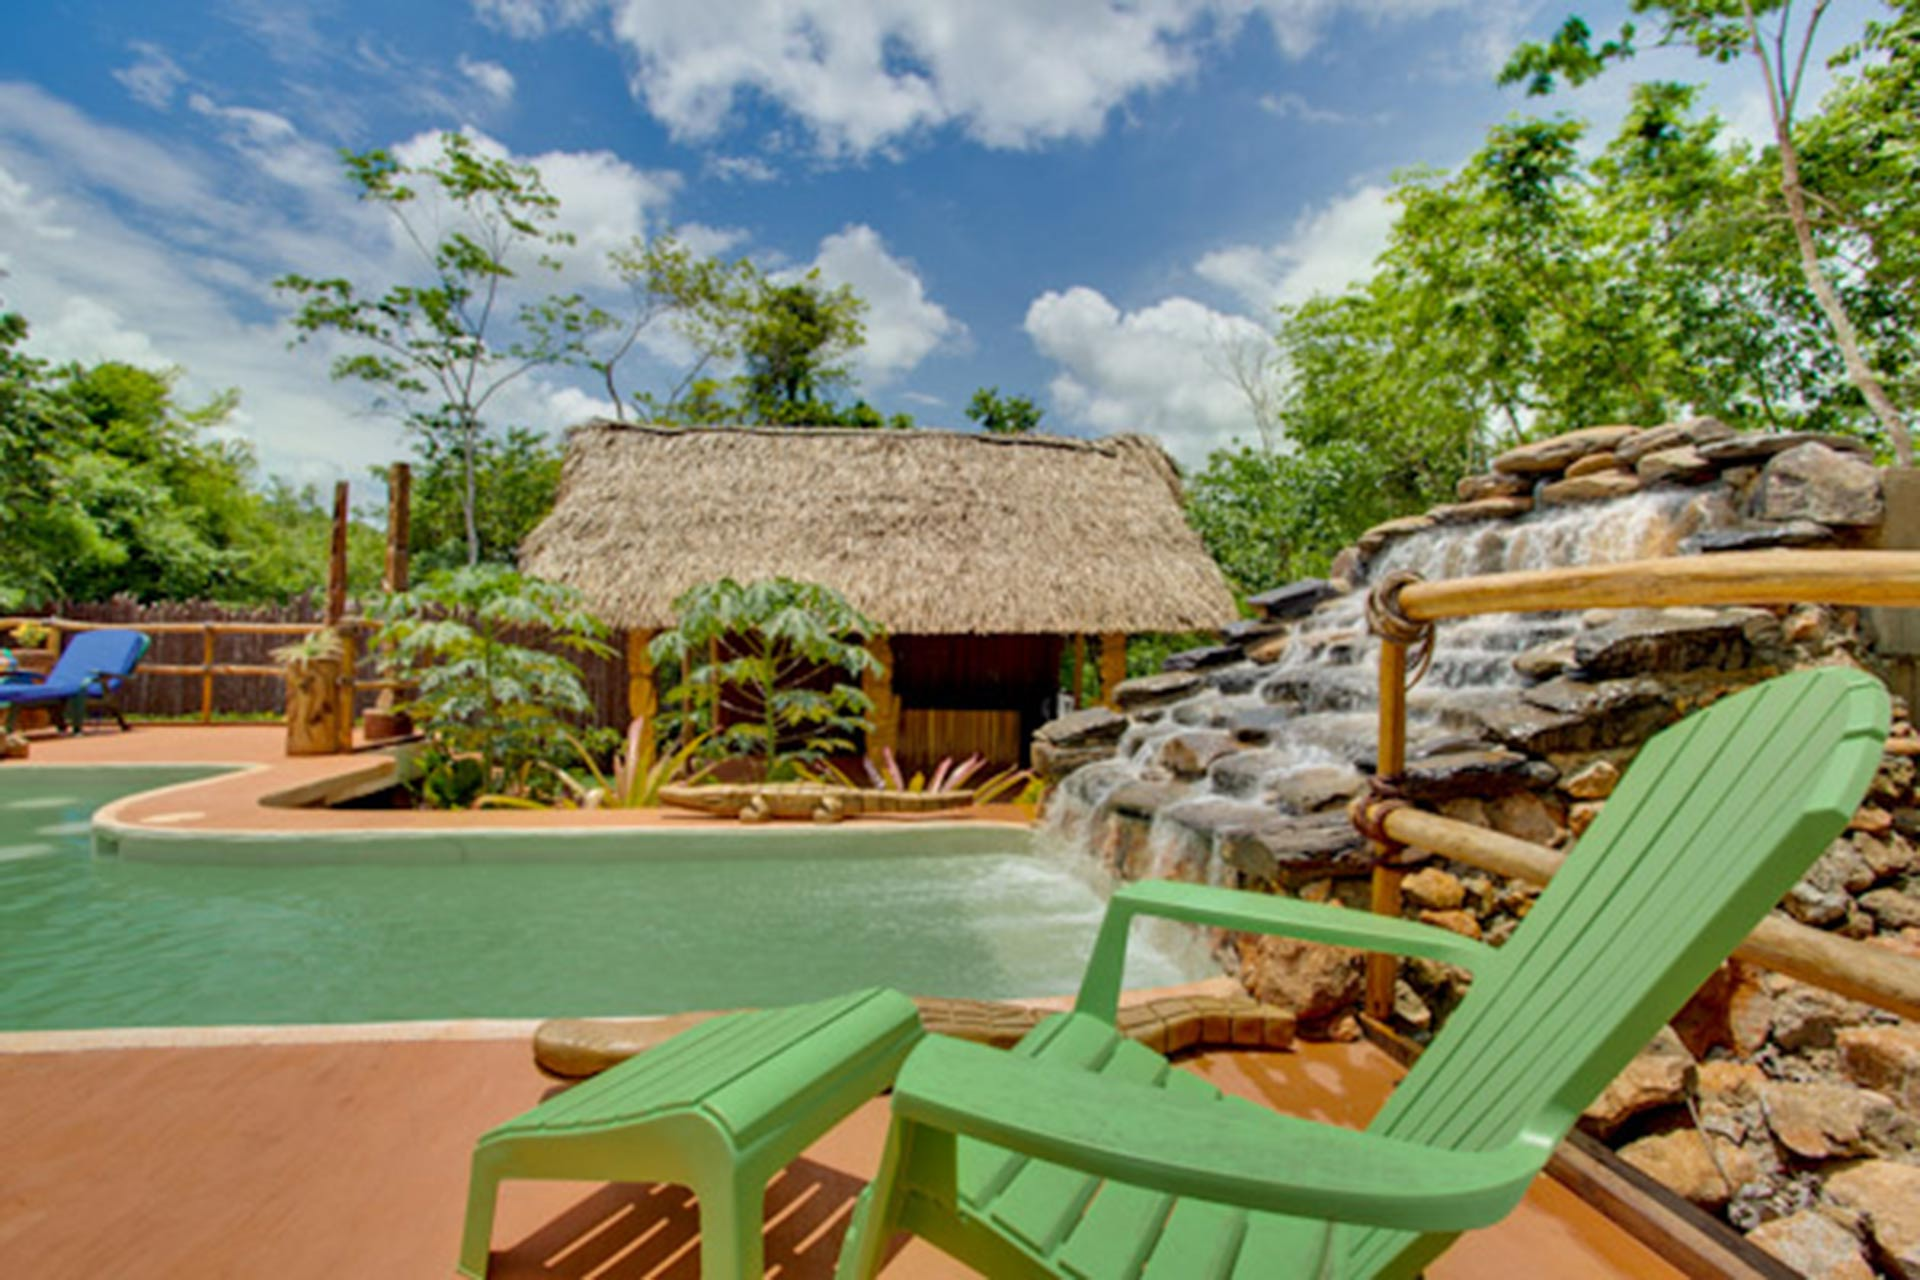 Mariposa Jungle Lodge in Belize.